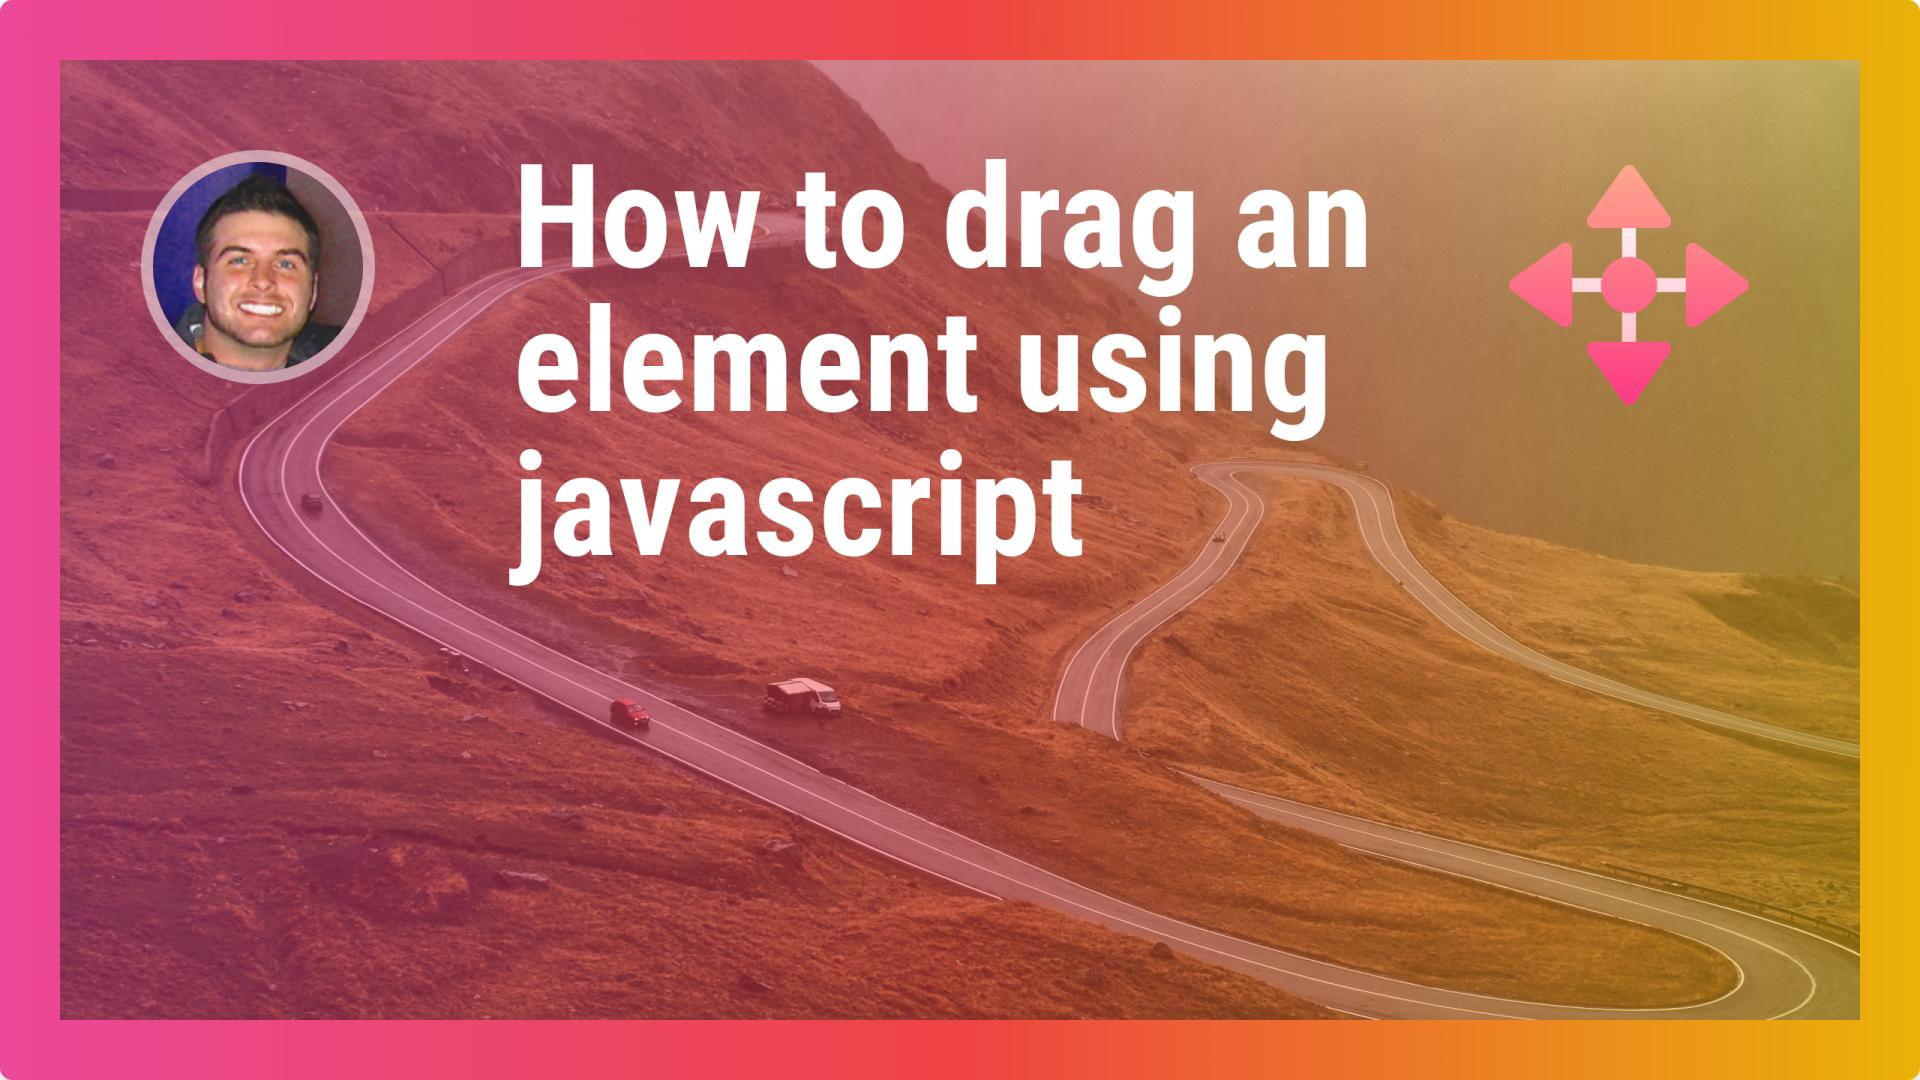 How to drag an element using javascript